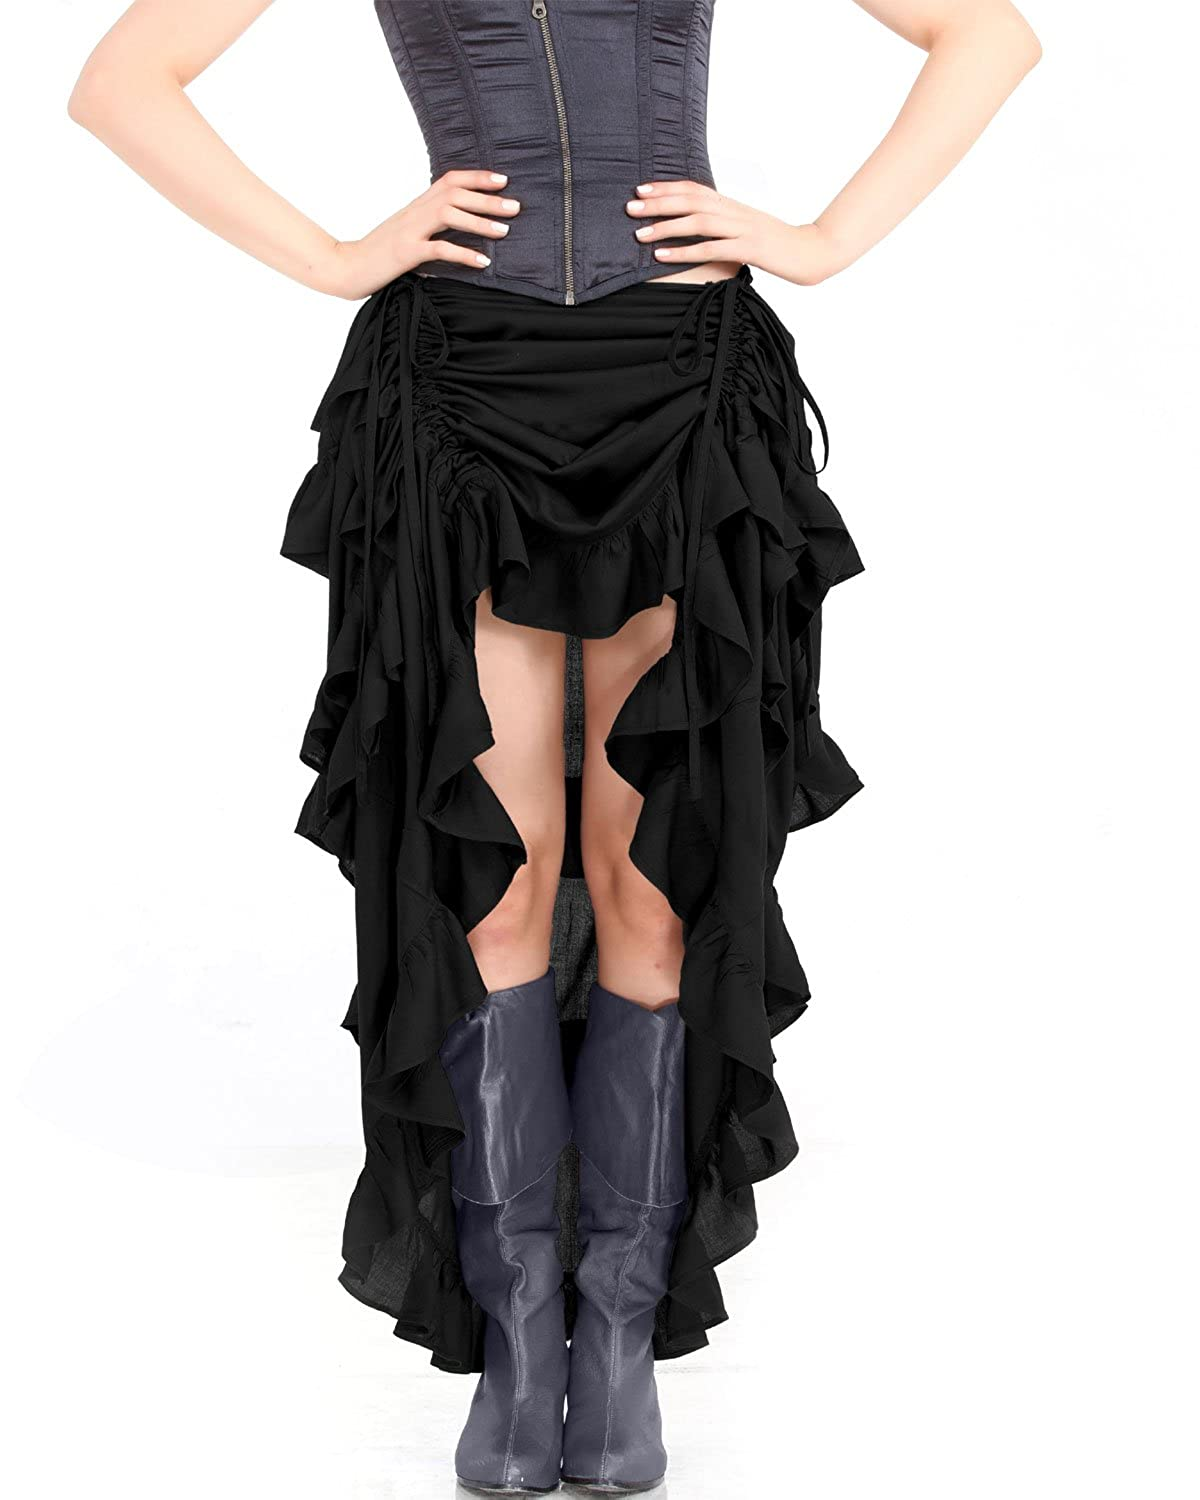 Steampunk Skirts | Bustle Skirts, Lace Skirts, Ruffle Skirts Steampunk Victorian Gothic Womens Costume Show Girl Skirt (Black) $53.99 AT vintagedancer.com